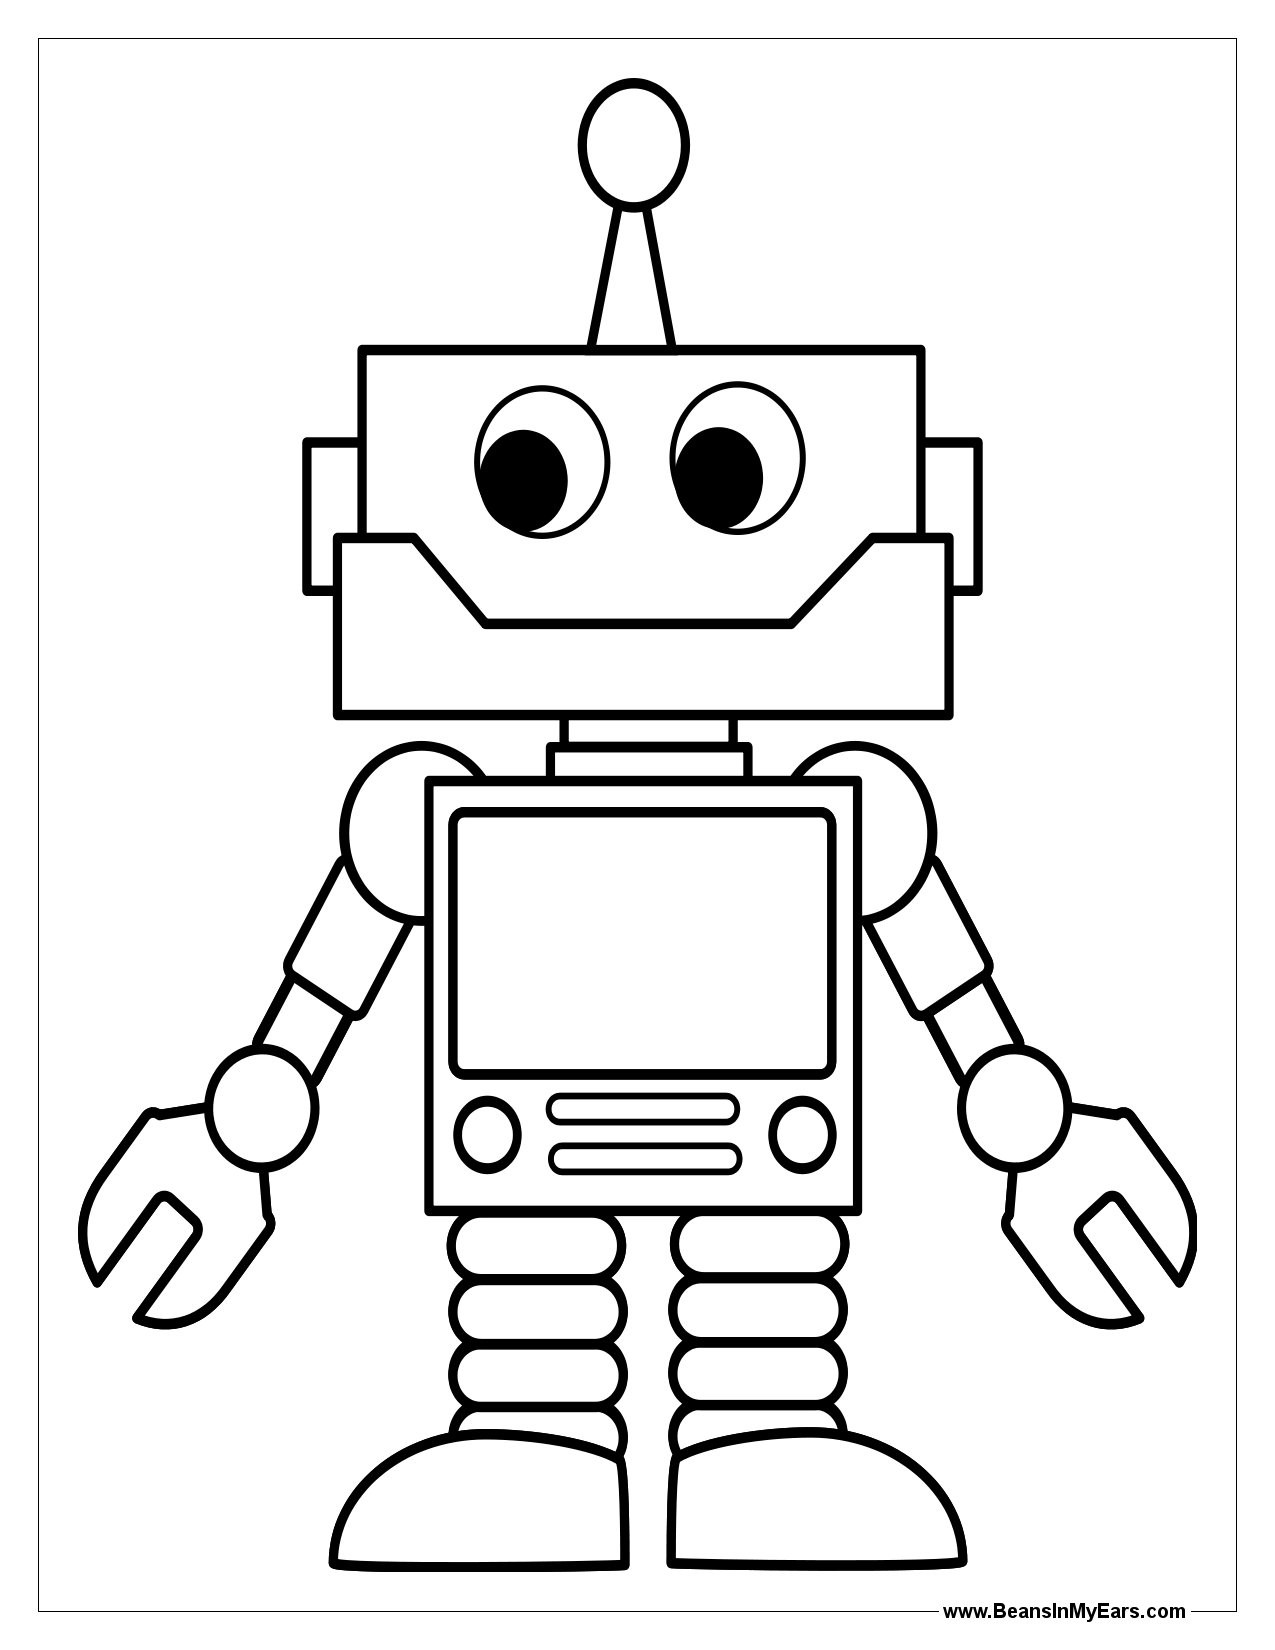 ready to robot coloring pages robots colouring pages 18 print off pages pages robot to coloring ready